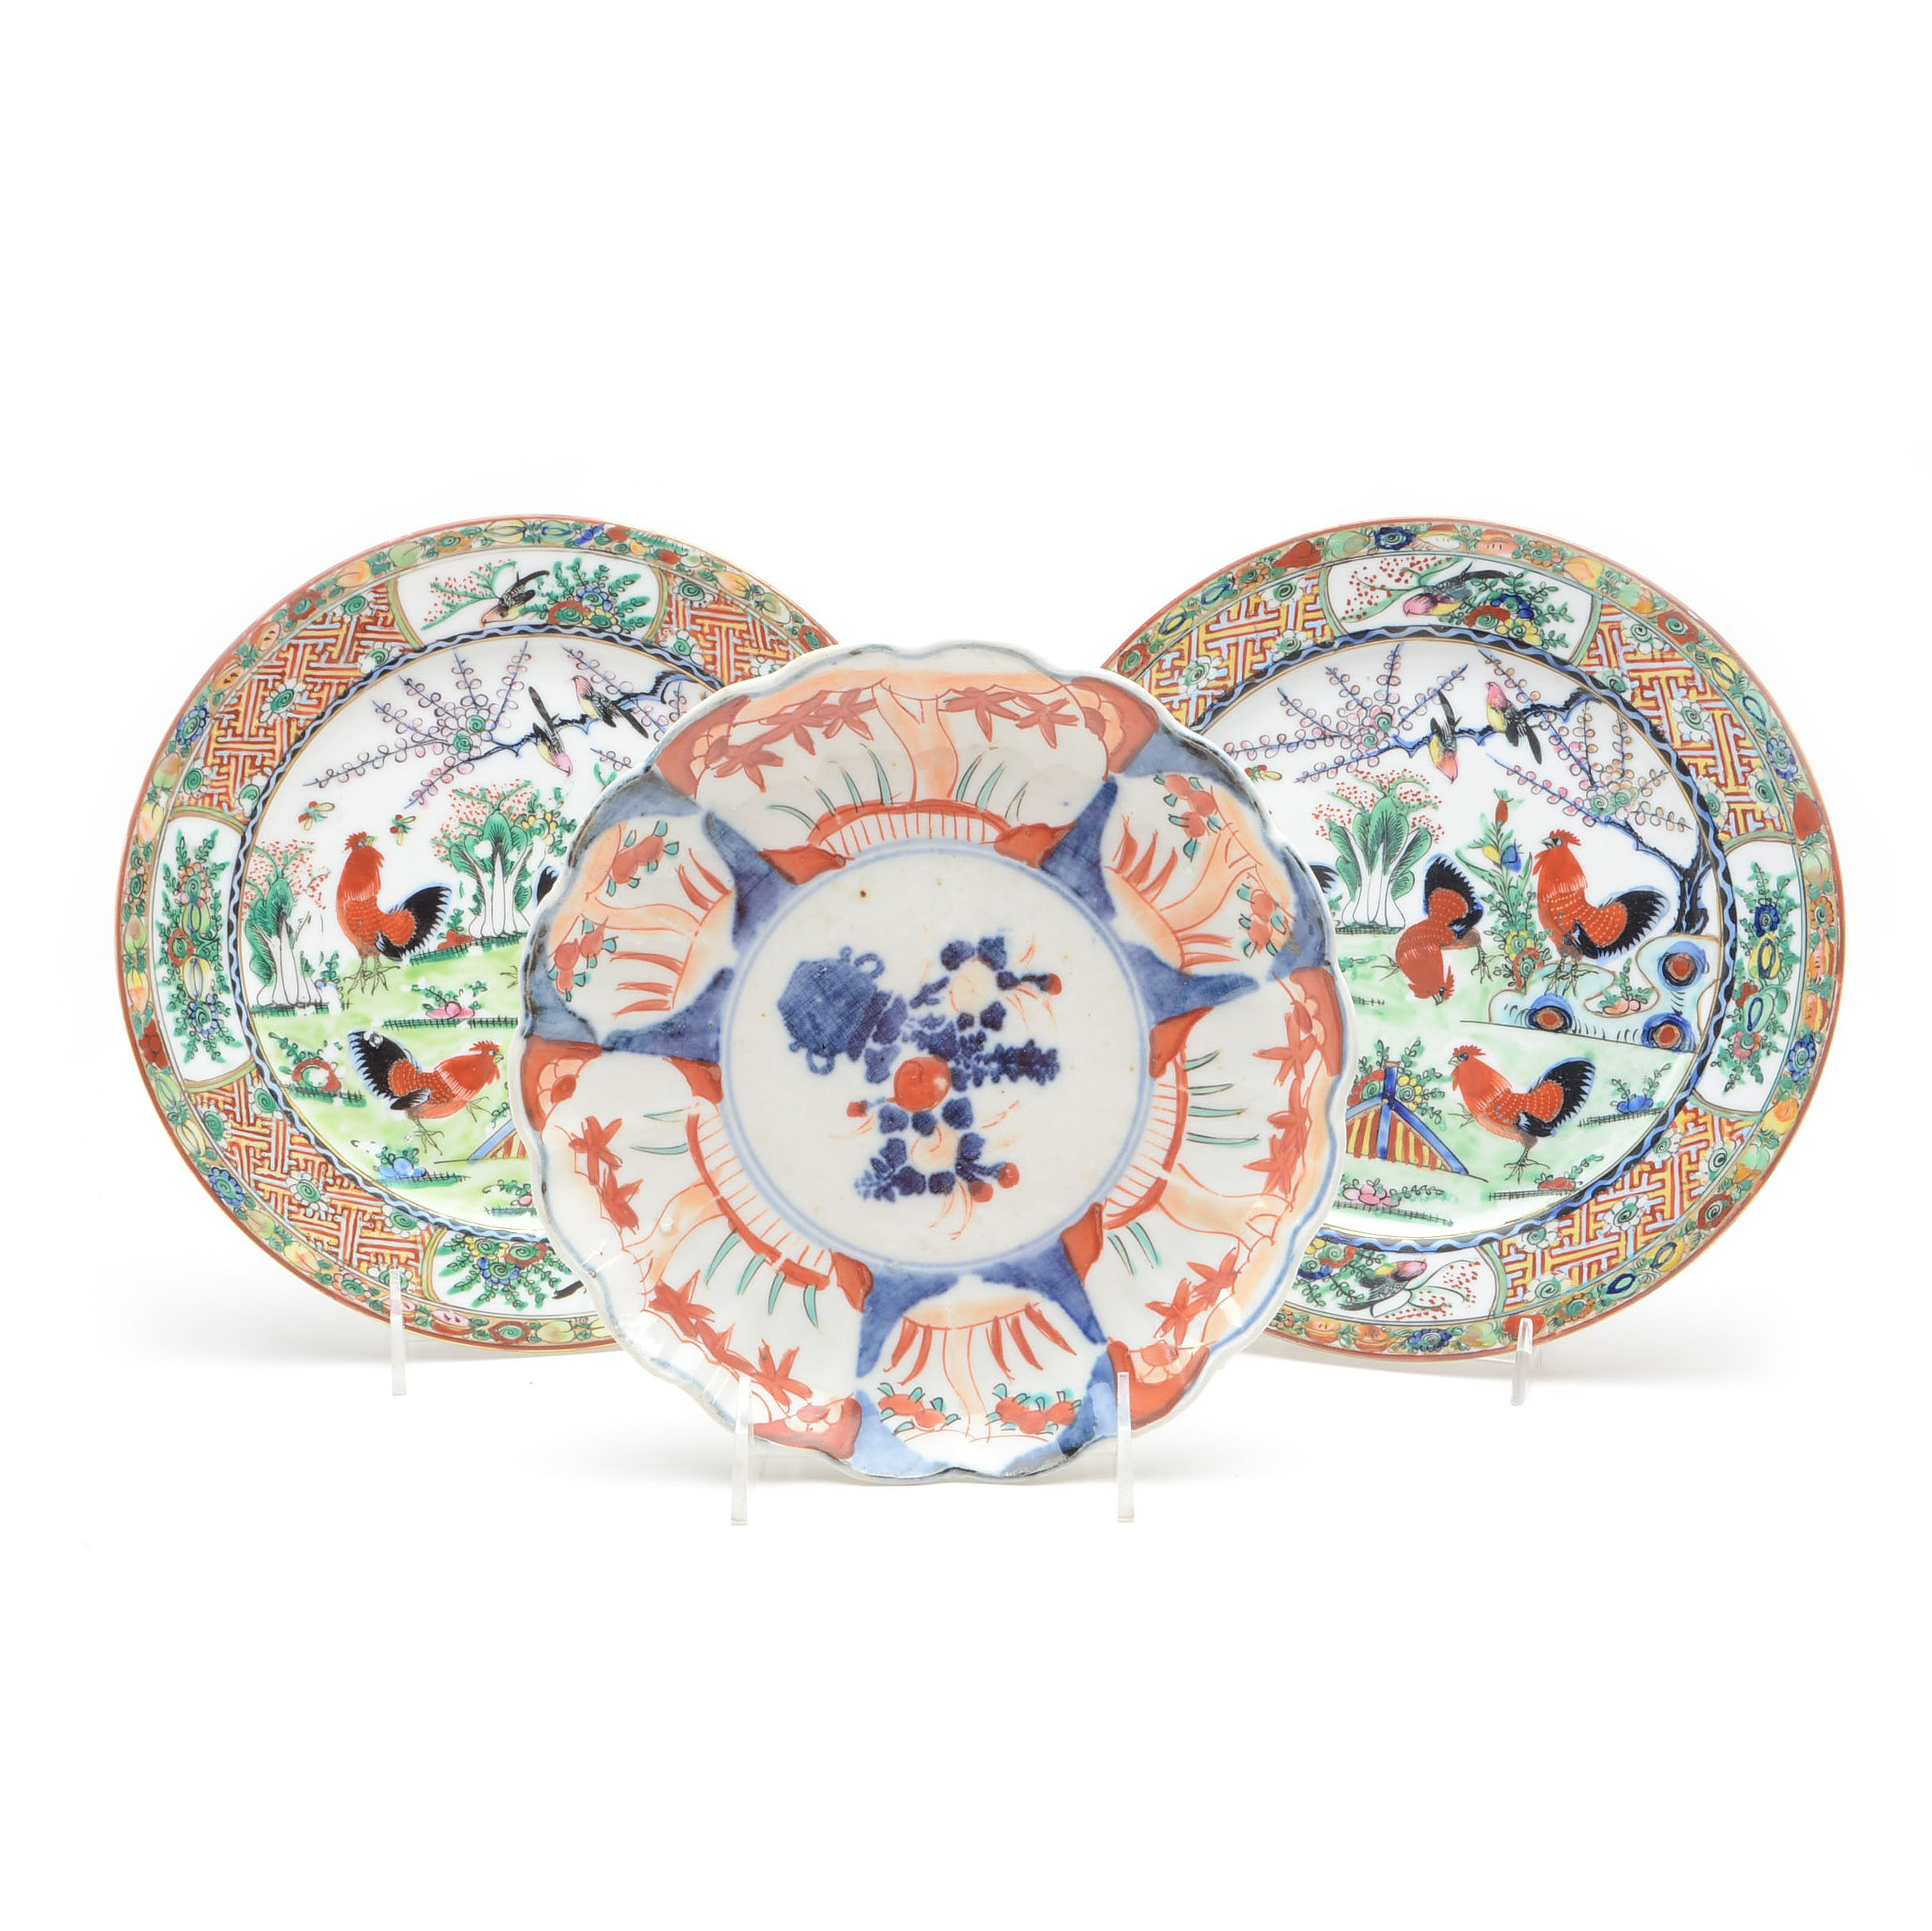 Decorative East Asian Polychrome Plates